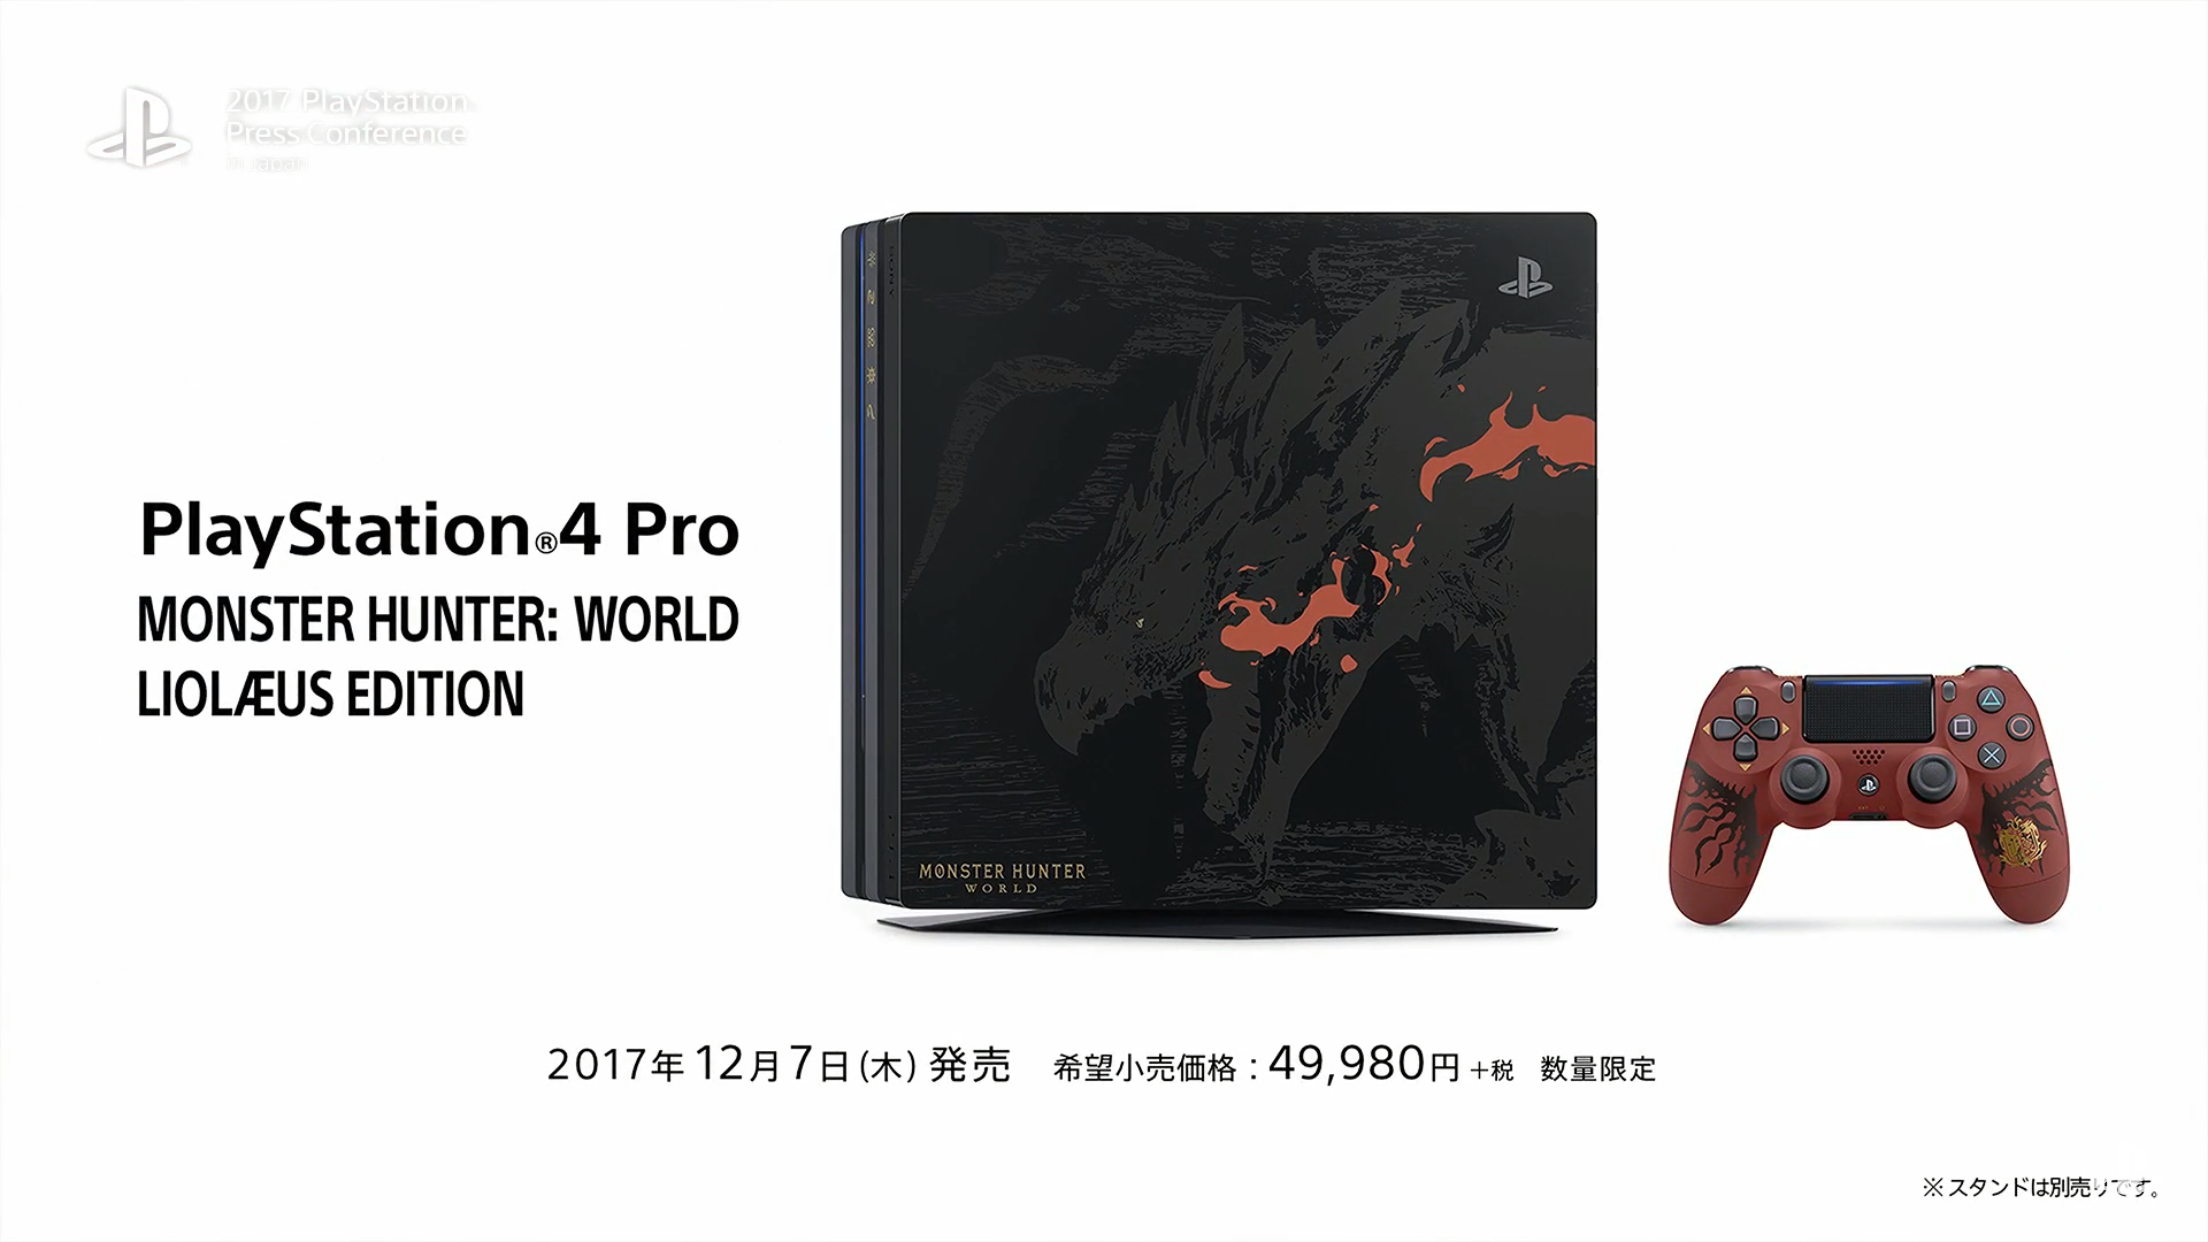 What is the Monster Hunter World worldwide release date?